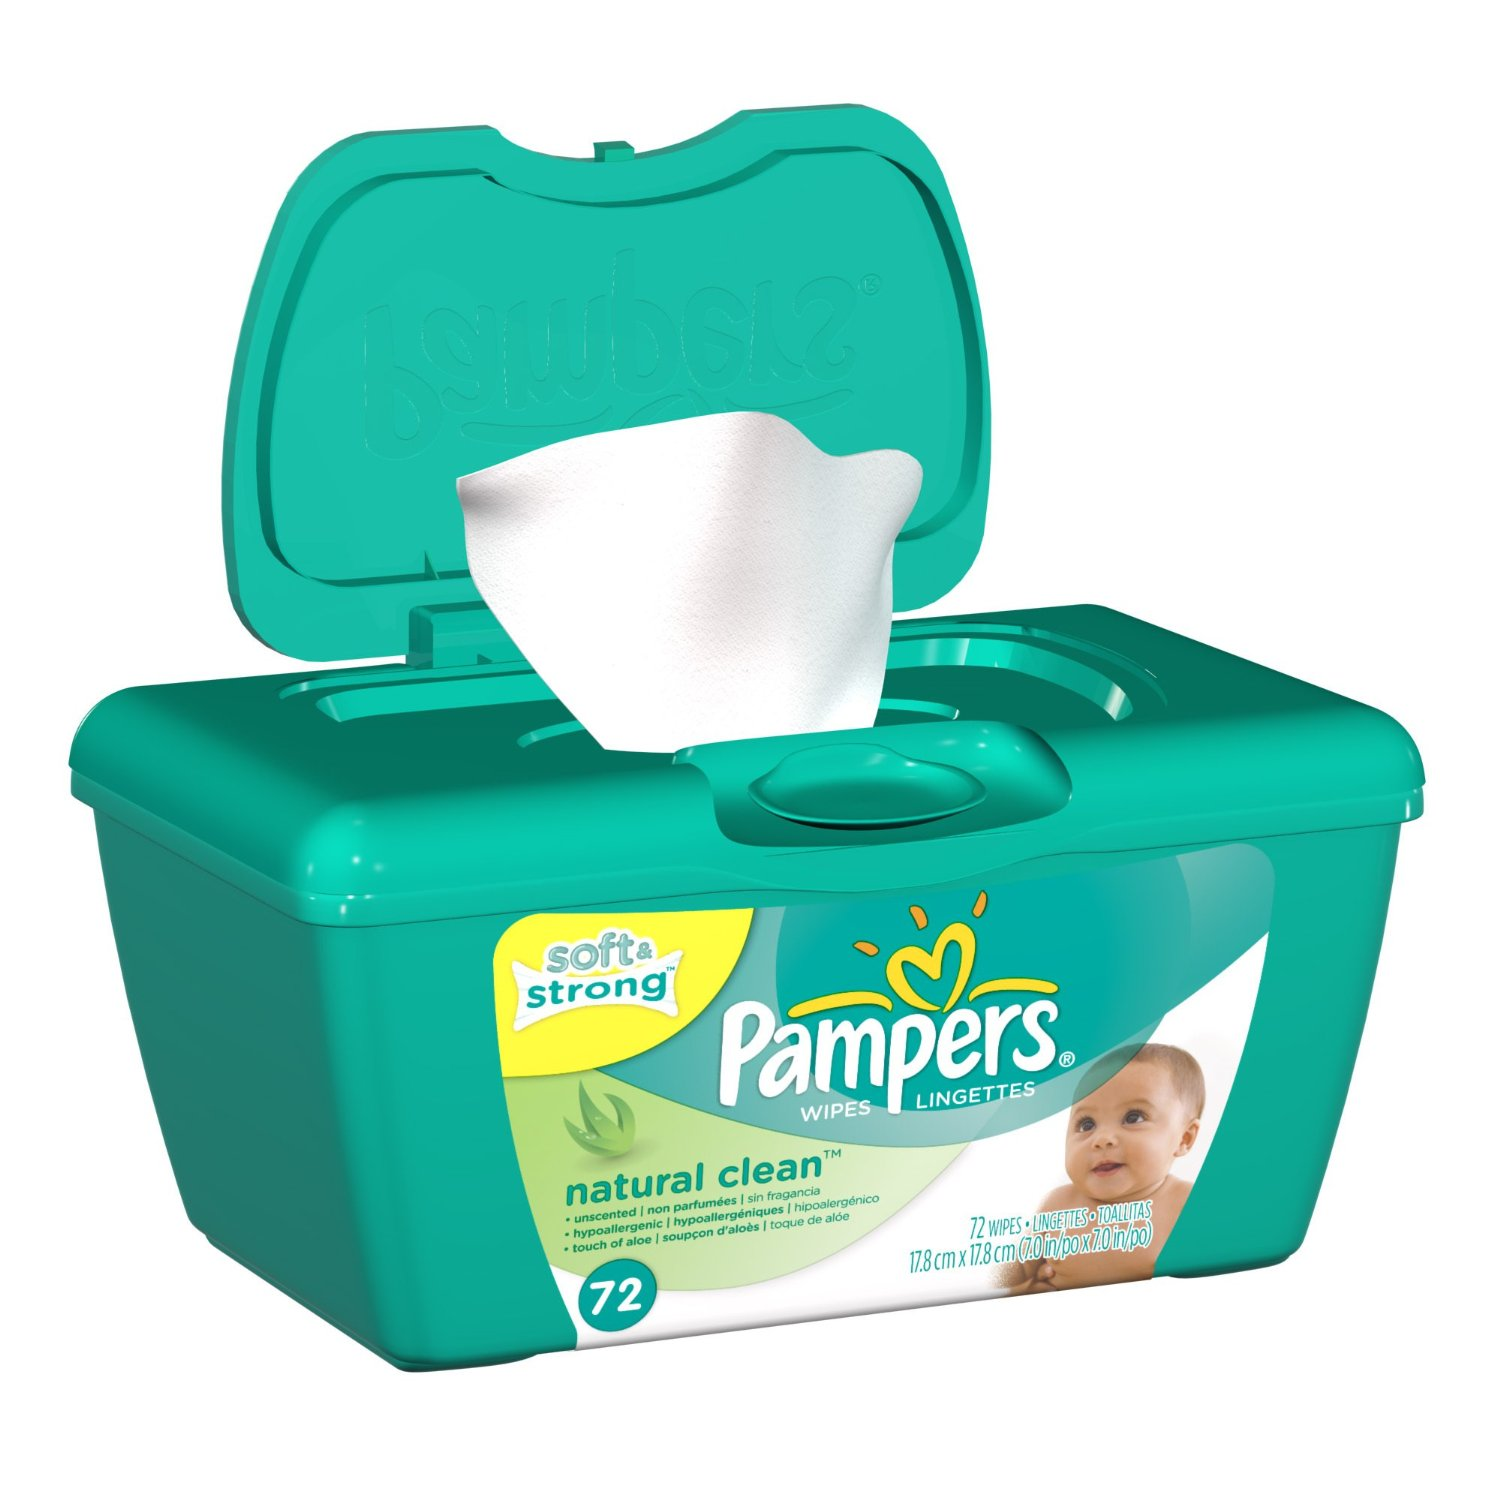 Savvy Spending Hurry Hot Deal On Pampers Wipes At Amazon